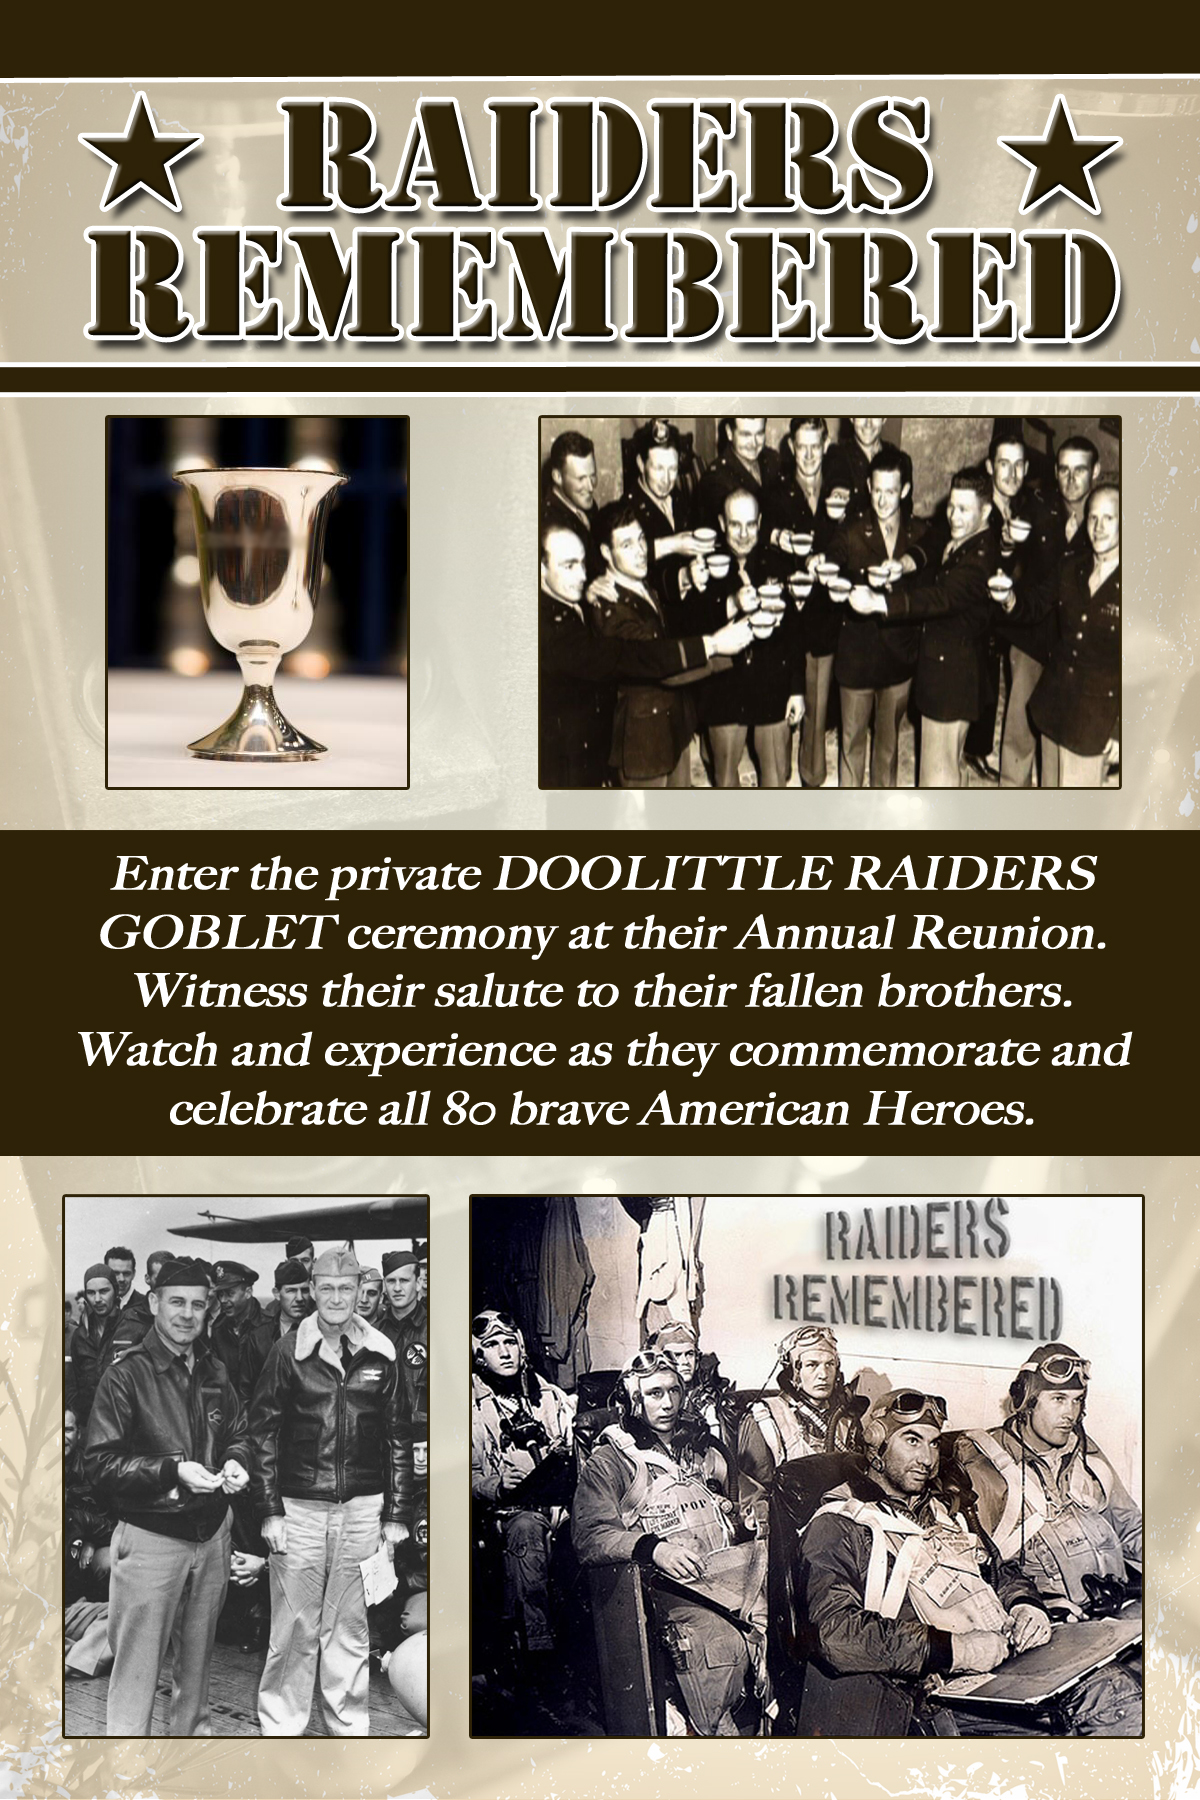 Raiders Remembered